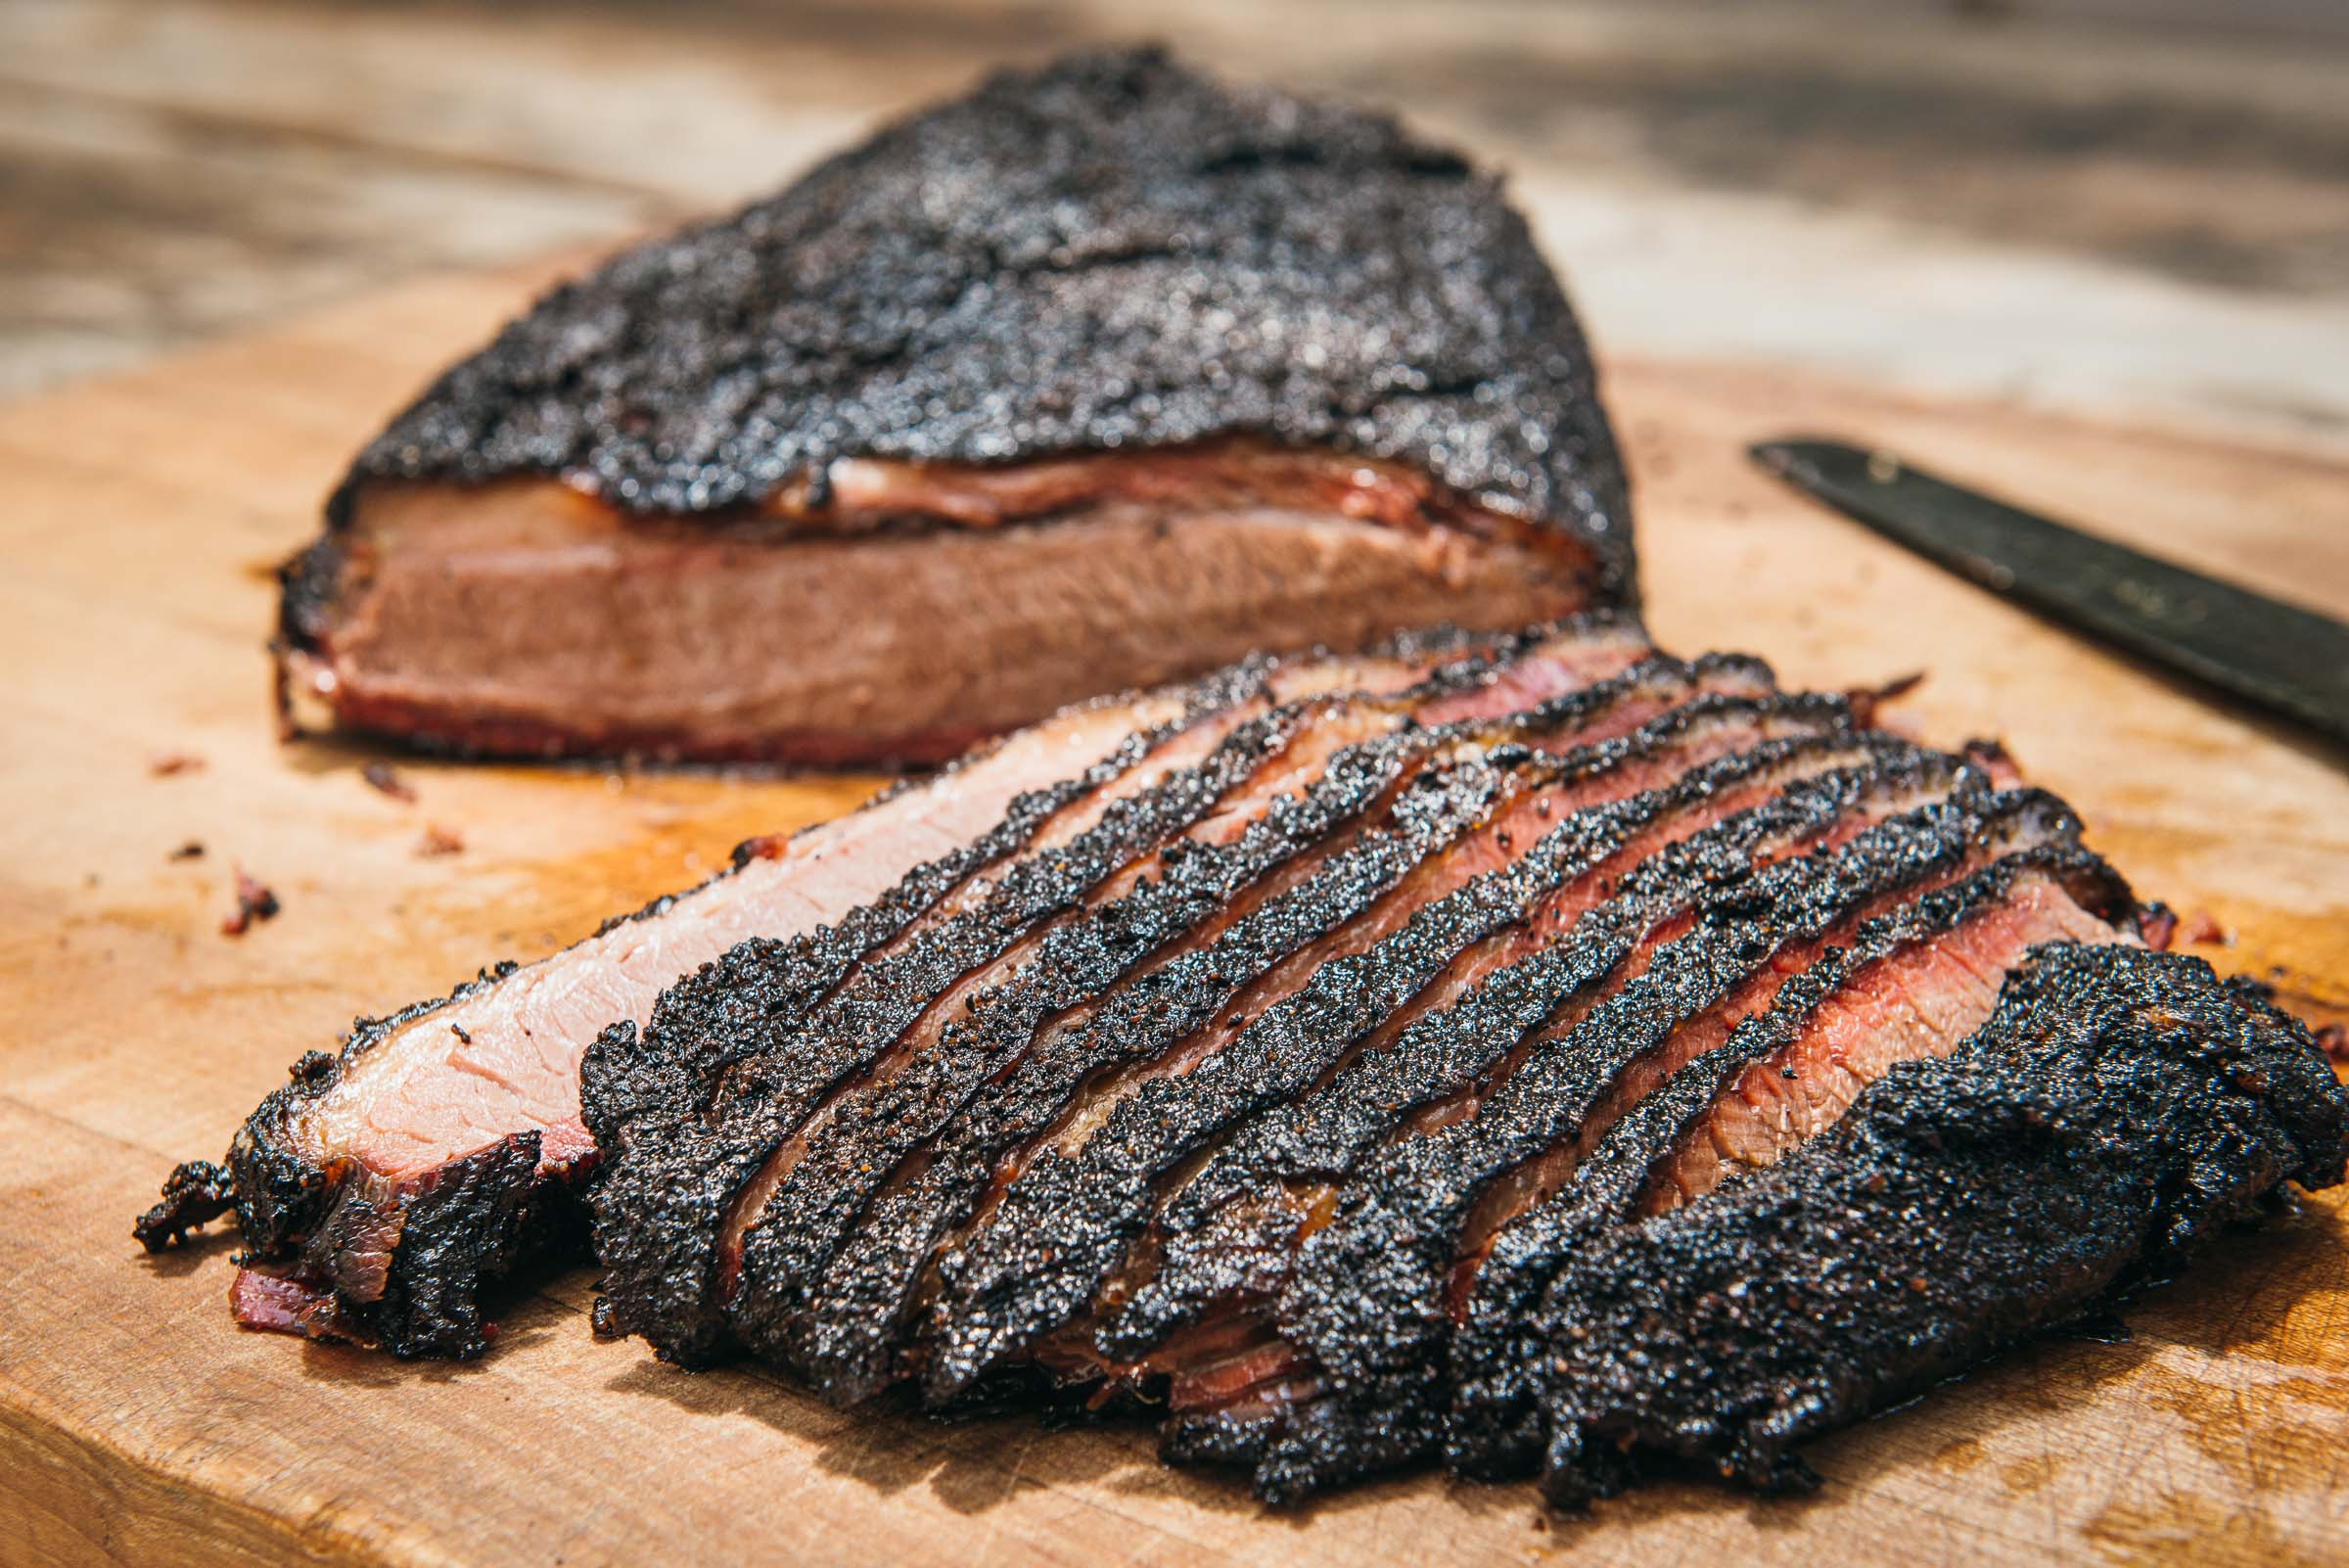 Sliced Brisket at rest, seasoned and marbled  - LaBarbecue-Brisket-Austin-TX